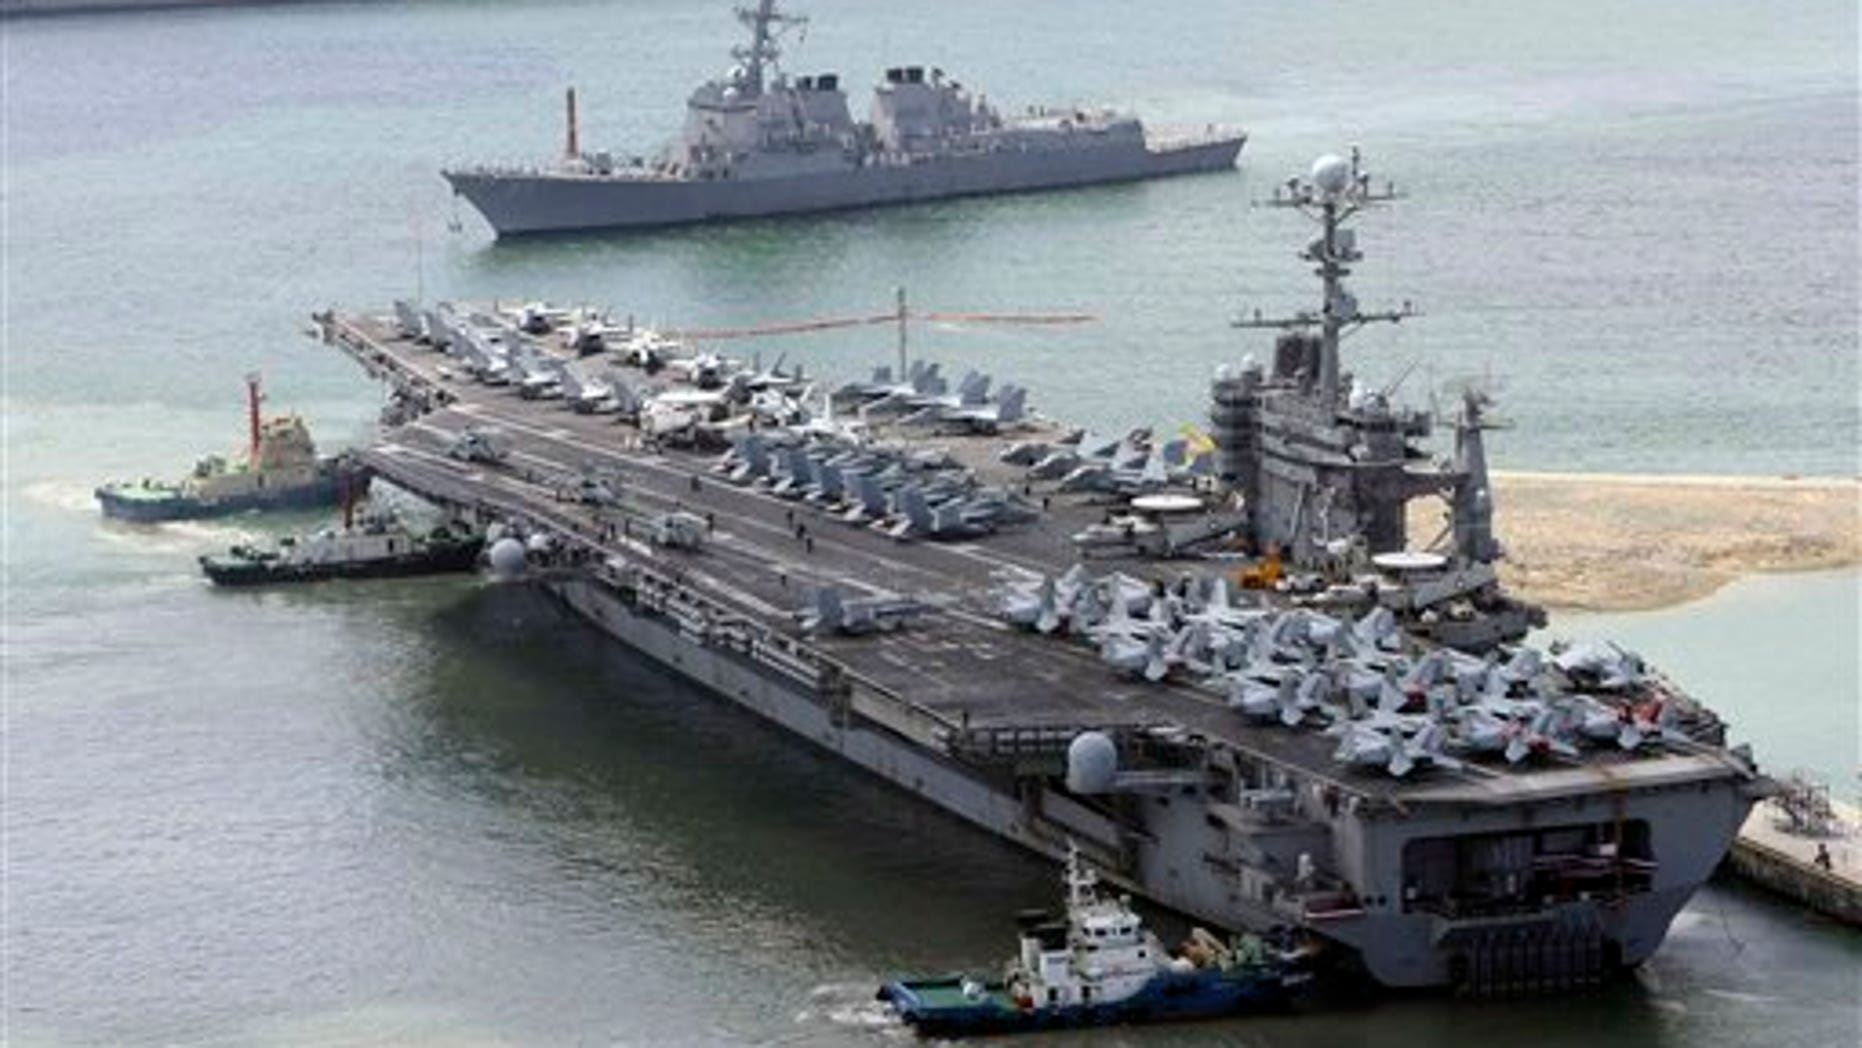 July 21: The massive USS George Washington aircraft carrier is escorted into the Busan port in South Korea for joint military exercises.